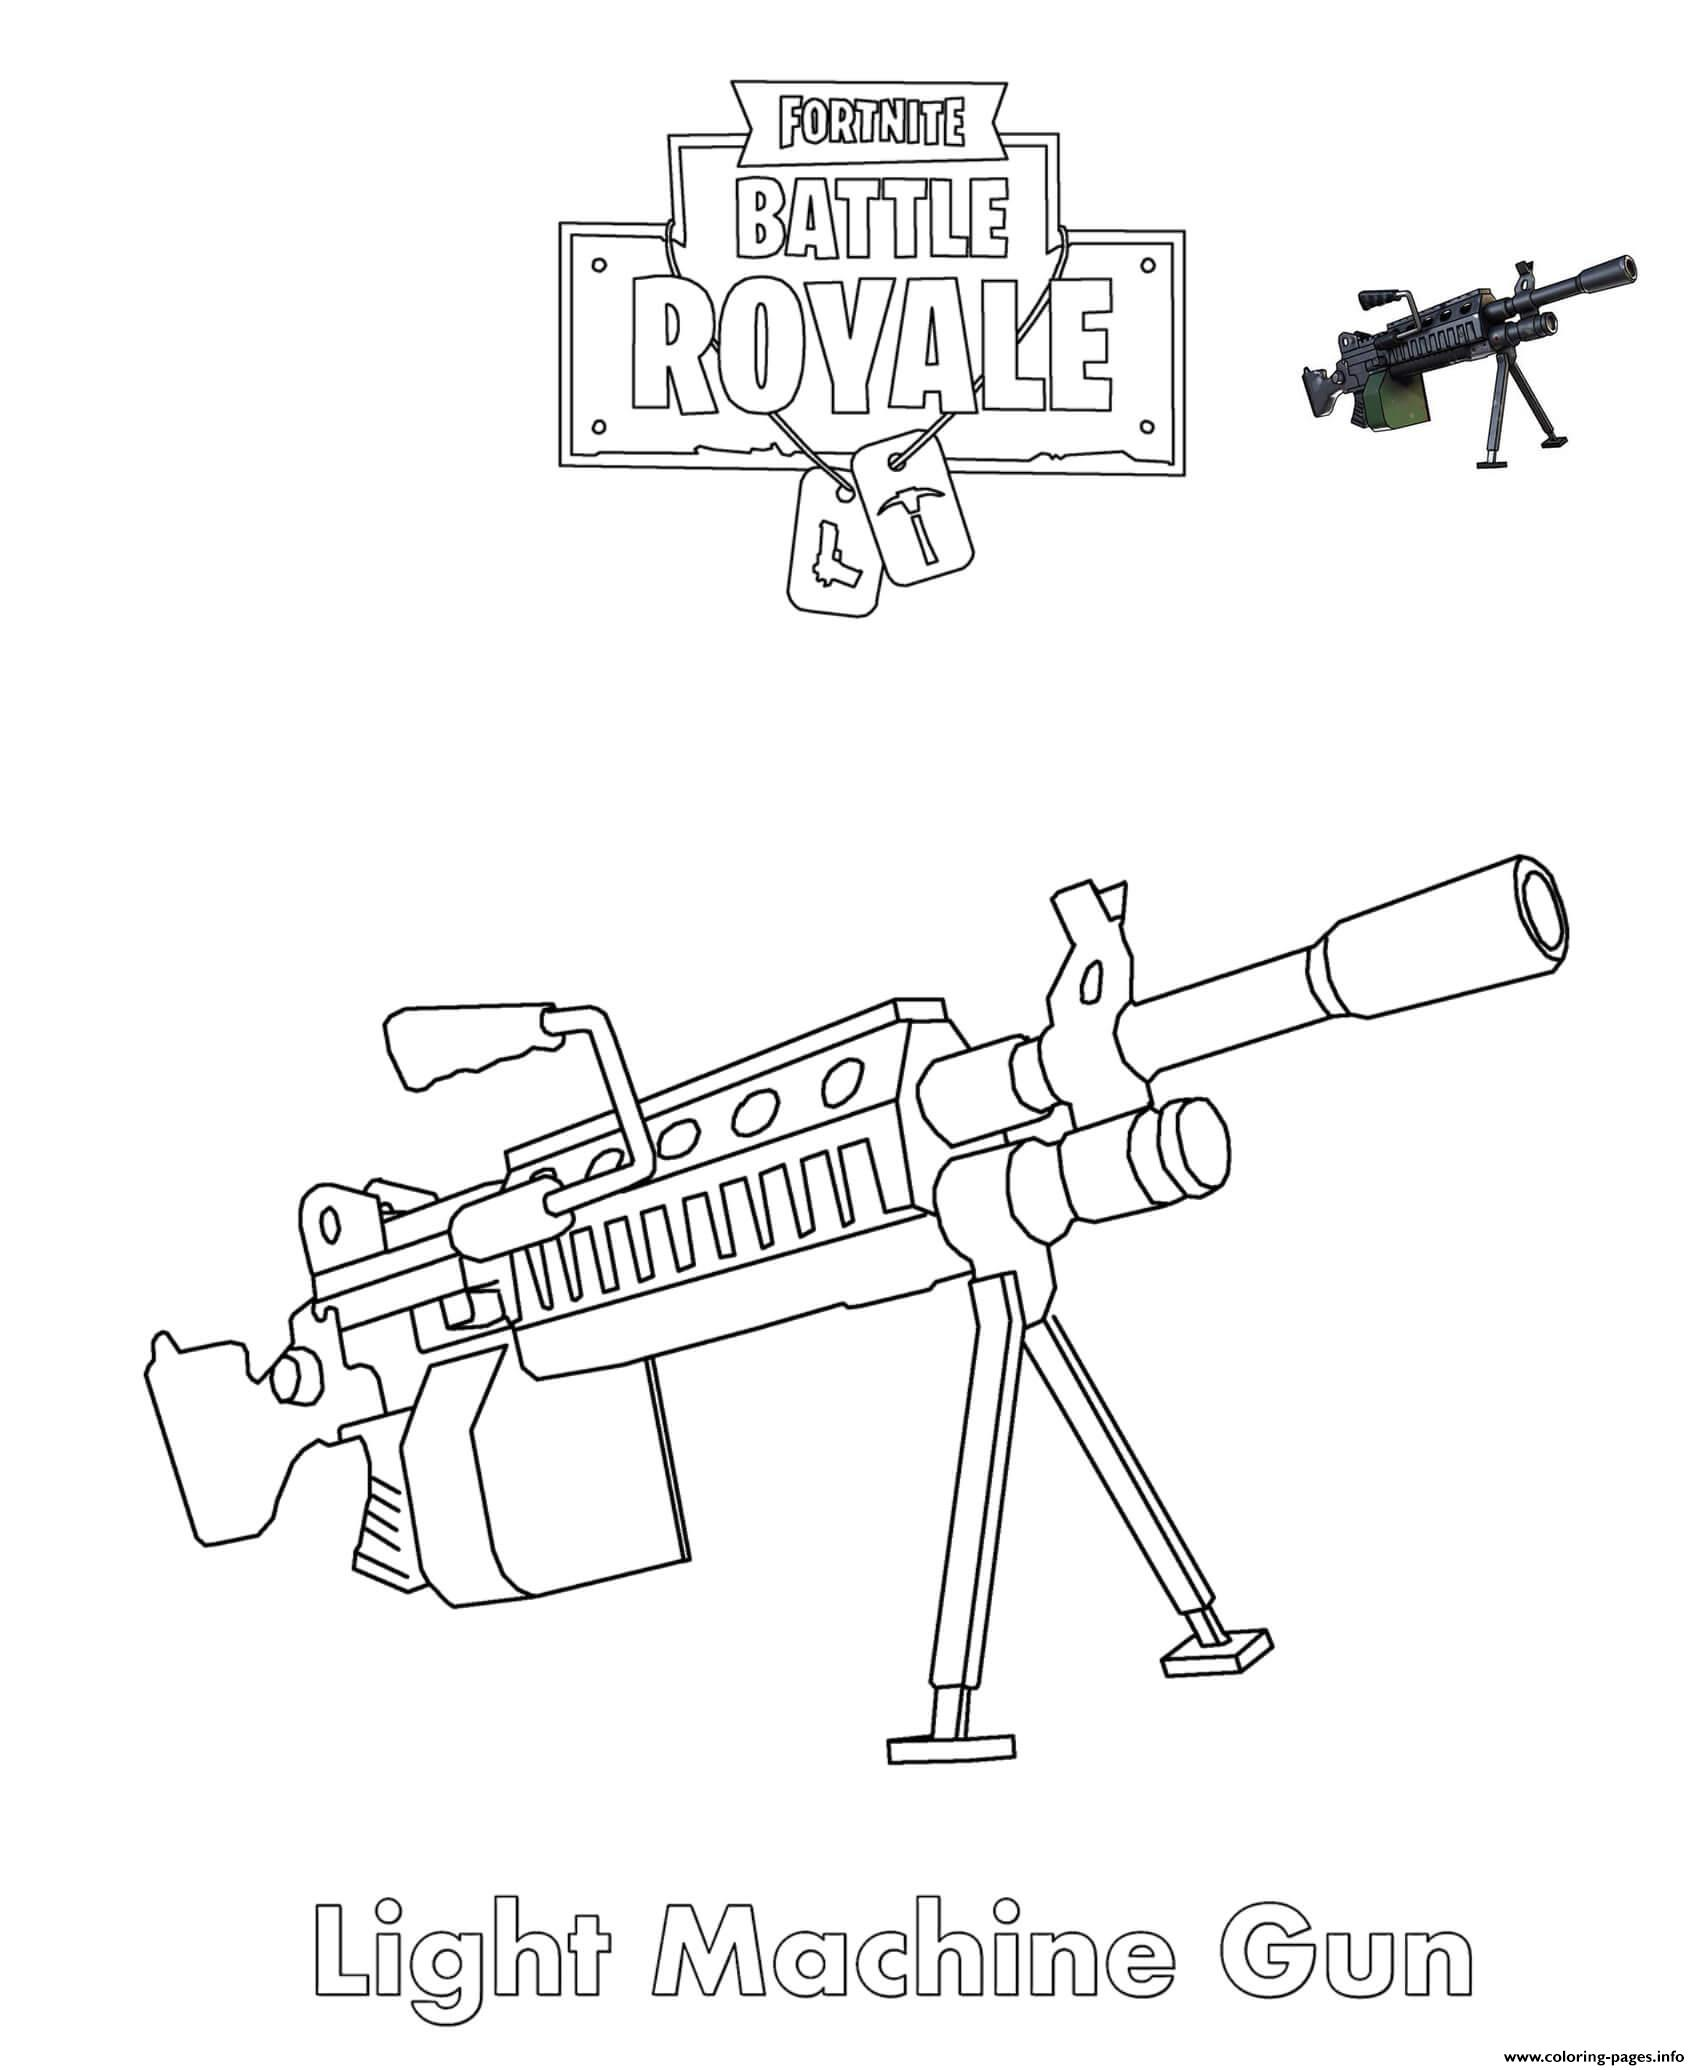 Light Machine Gun Fortnite Battle Royale Coloring Pages